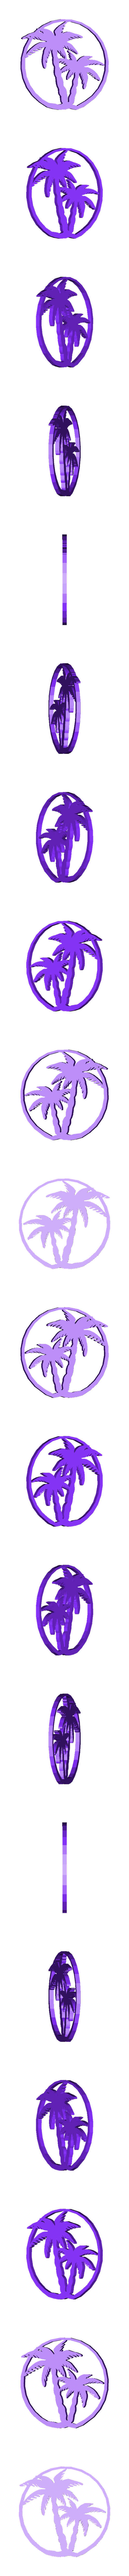 COCOTIERS.STL Download free STL file COCONUT TREE #ANYCUBIC3D • 3D printer template, dunatou